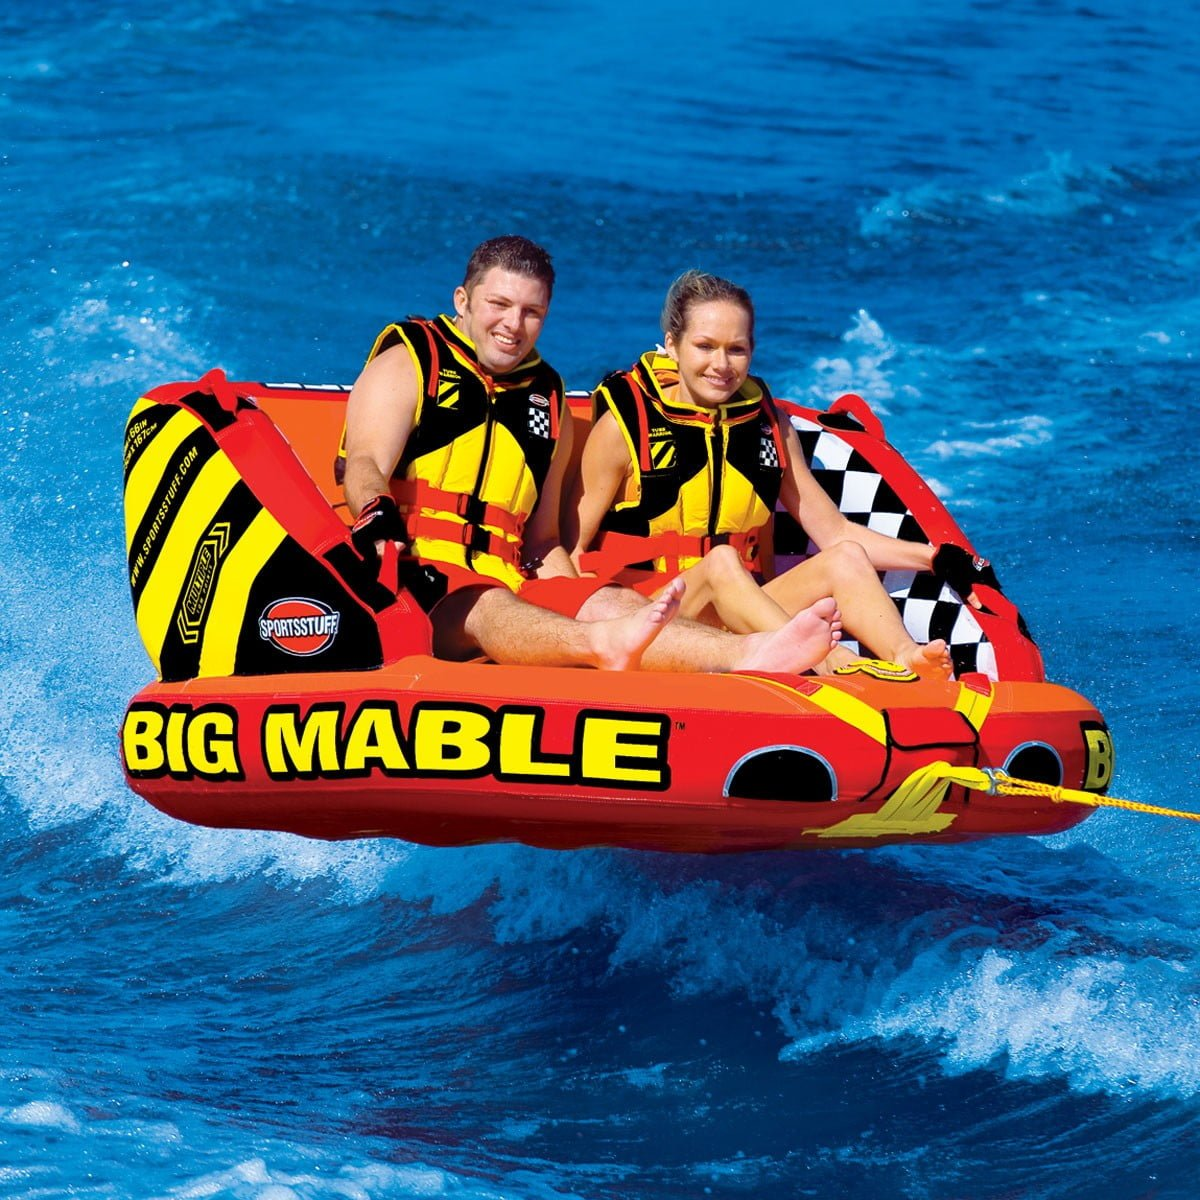 Caicos Water Fun Big Mable Towable